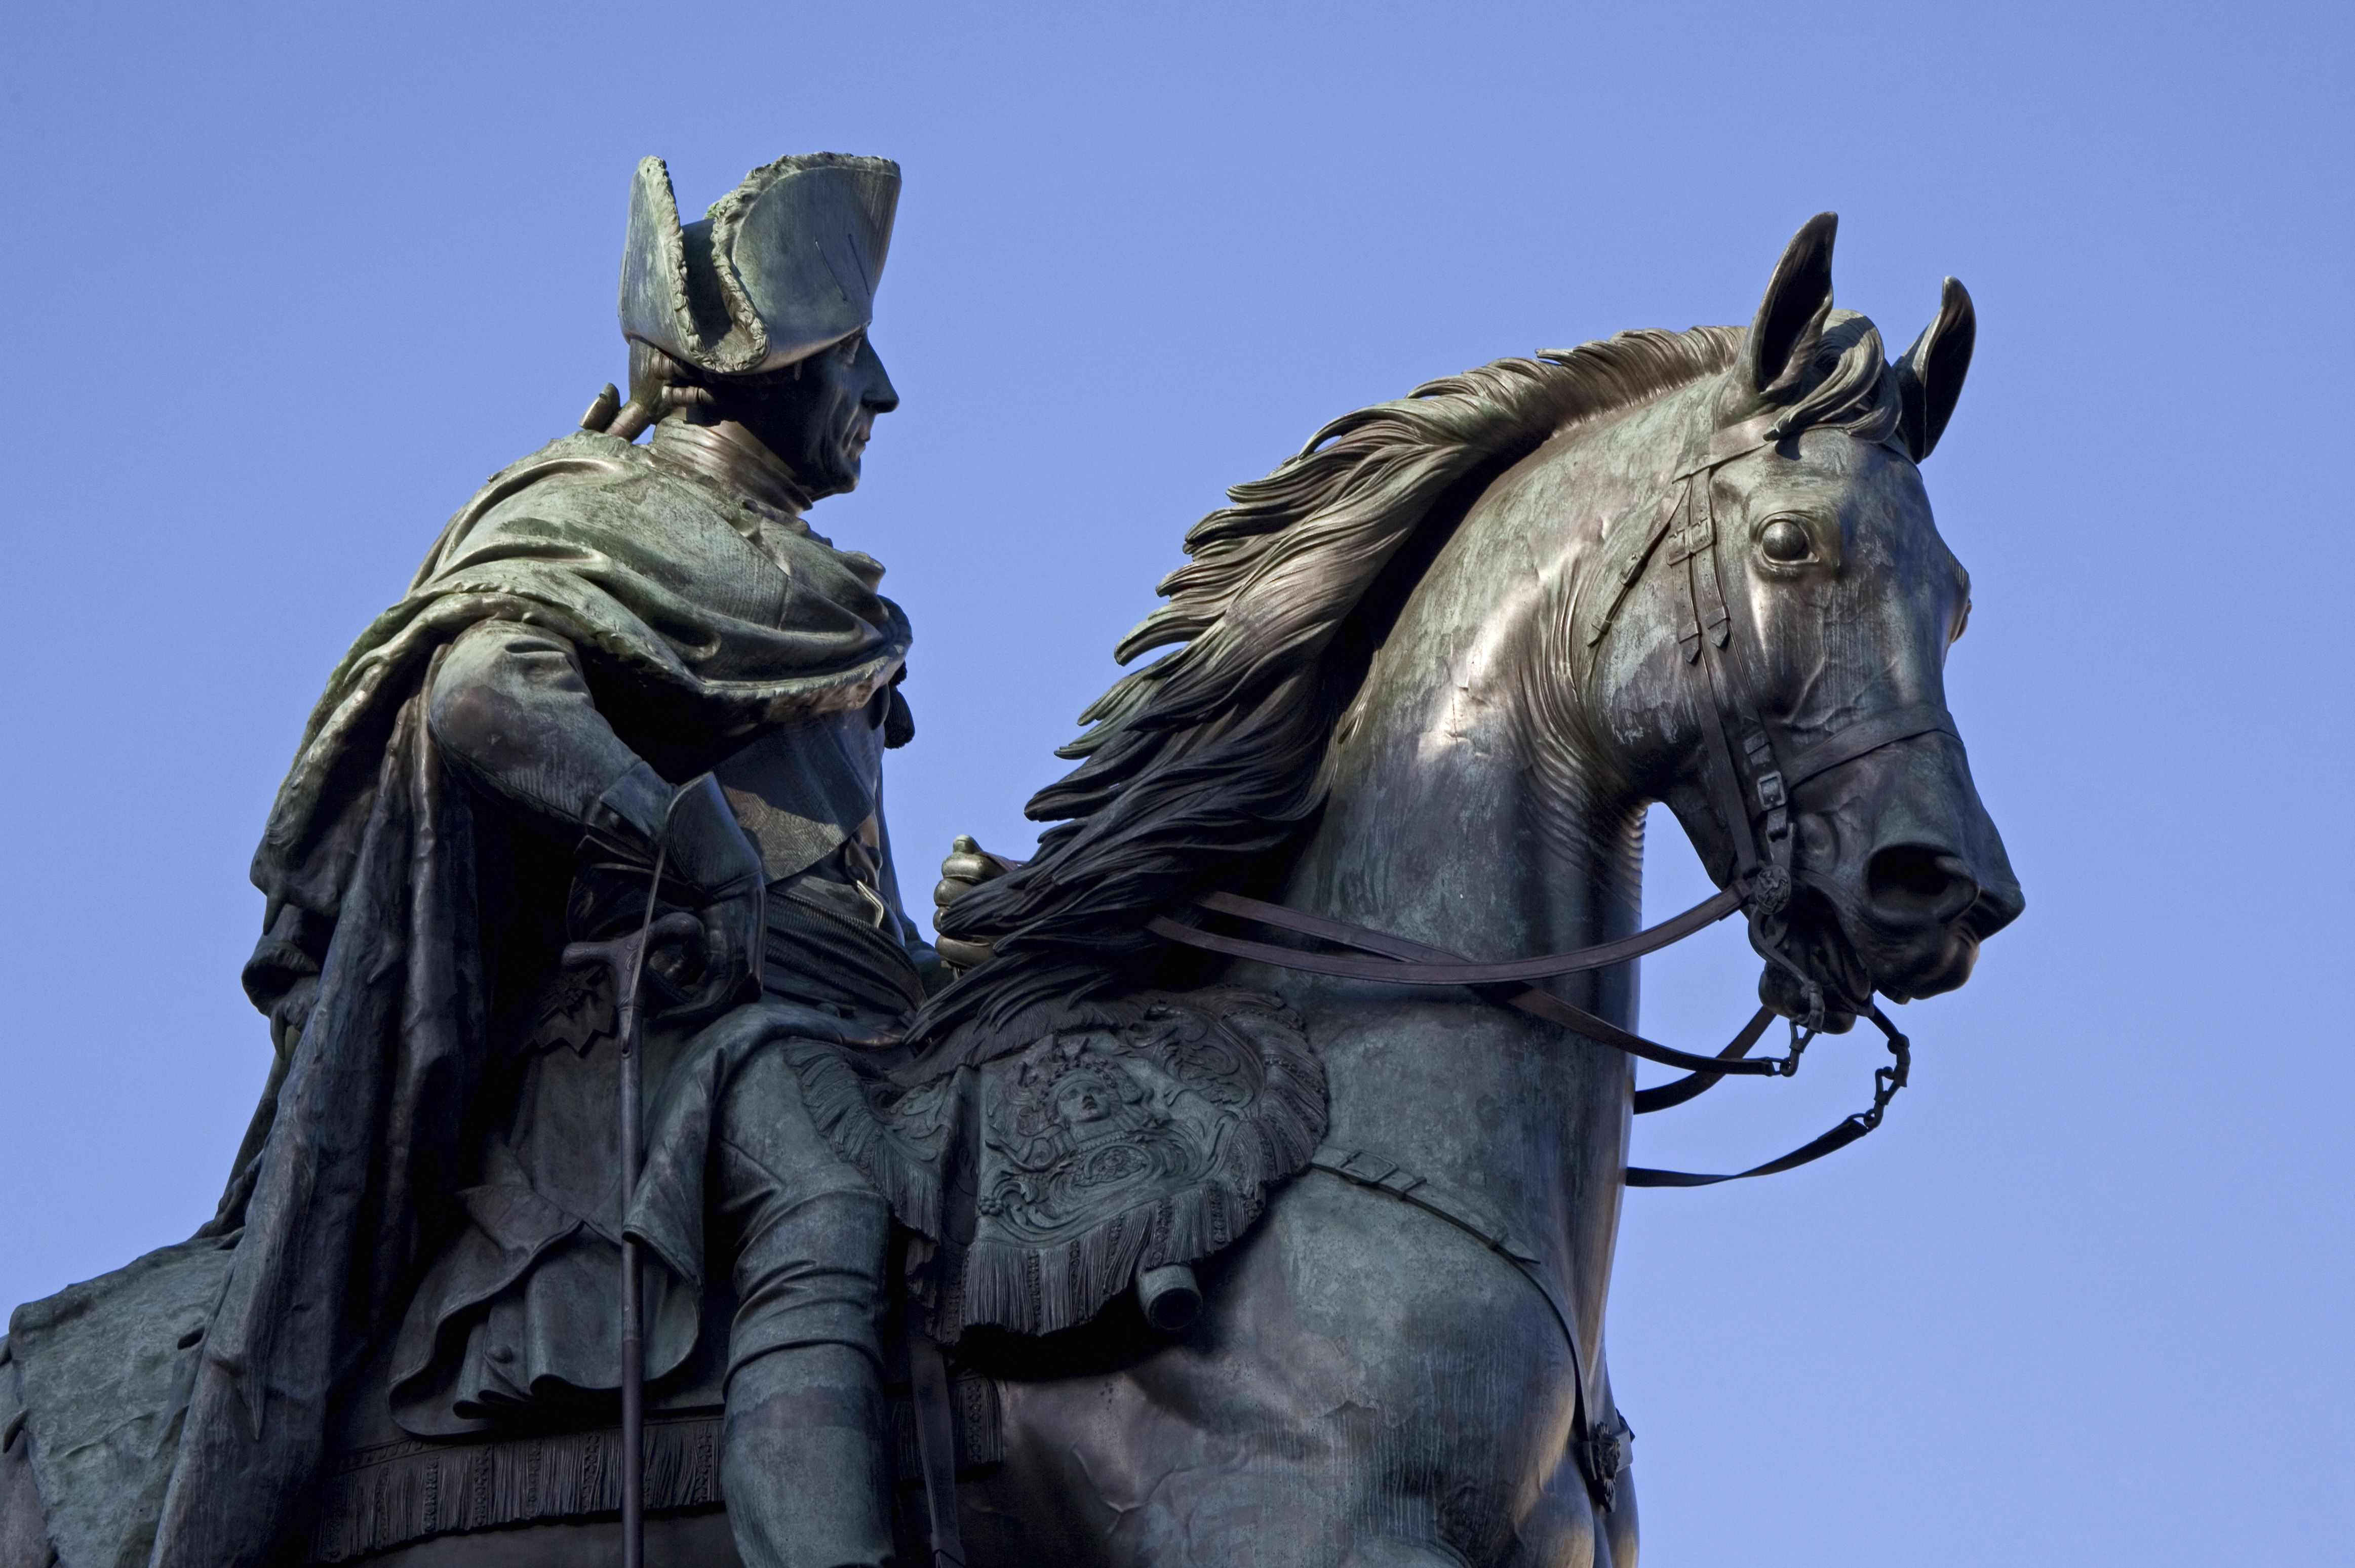 Equestrian statue of Frederick the Great in Berlin, Germany